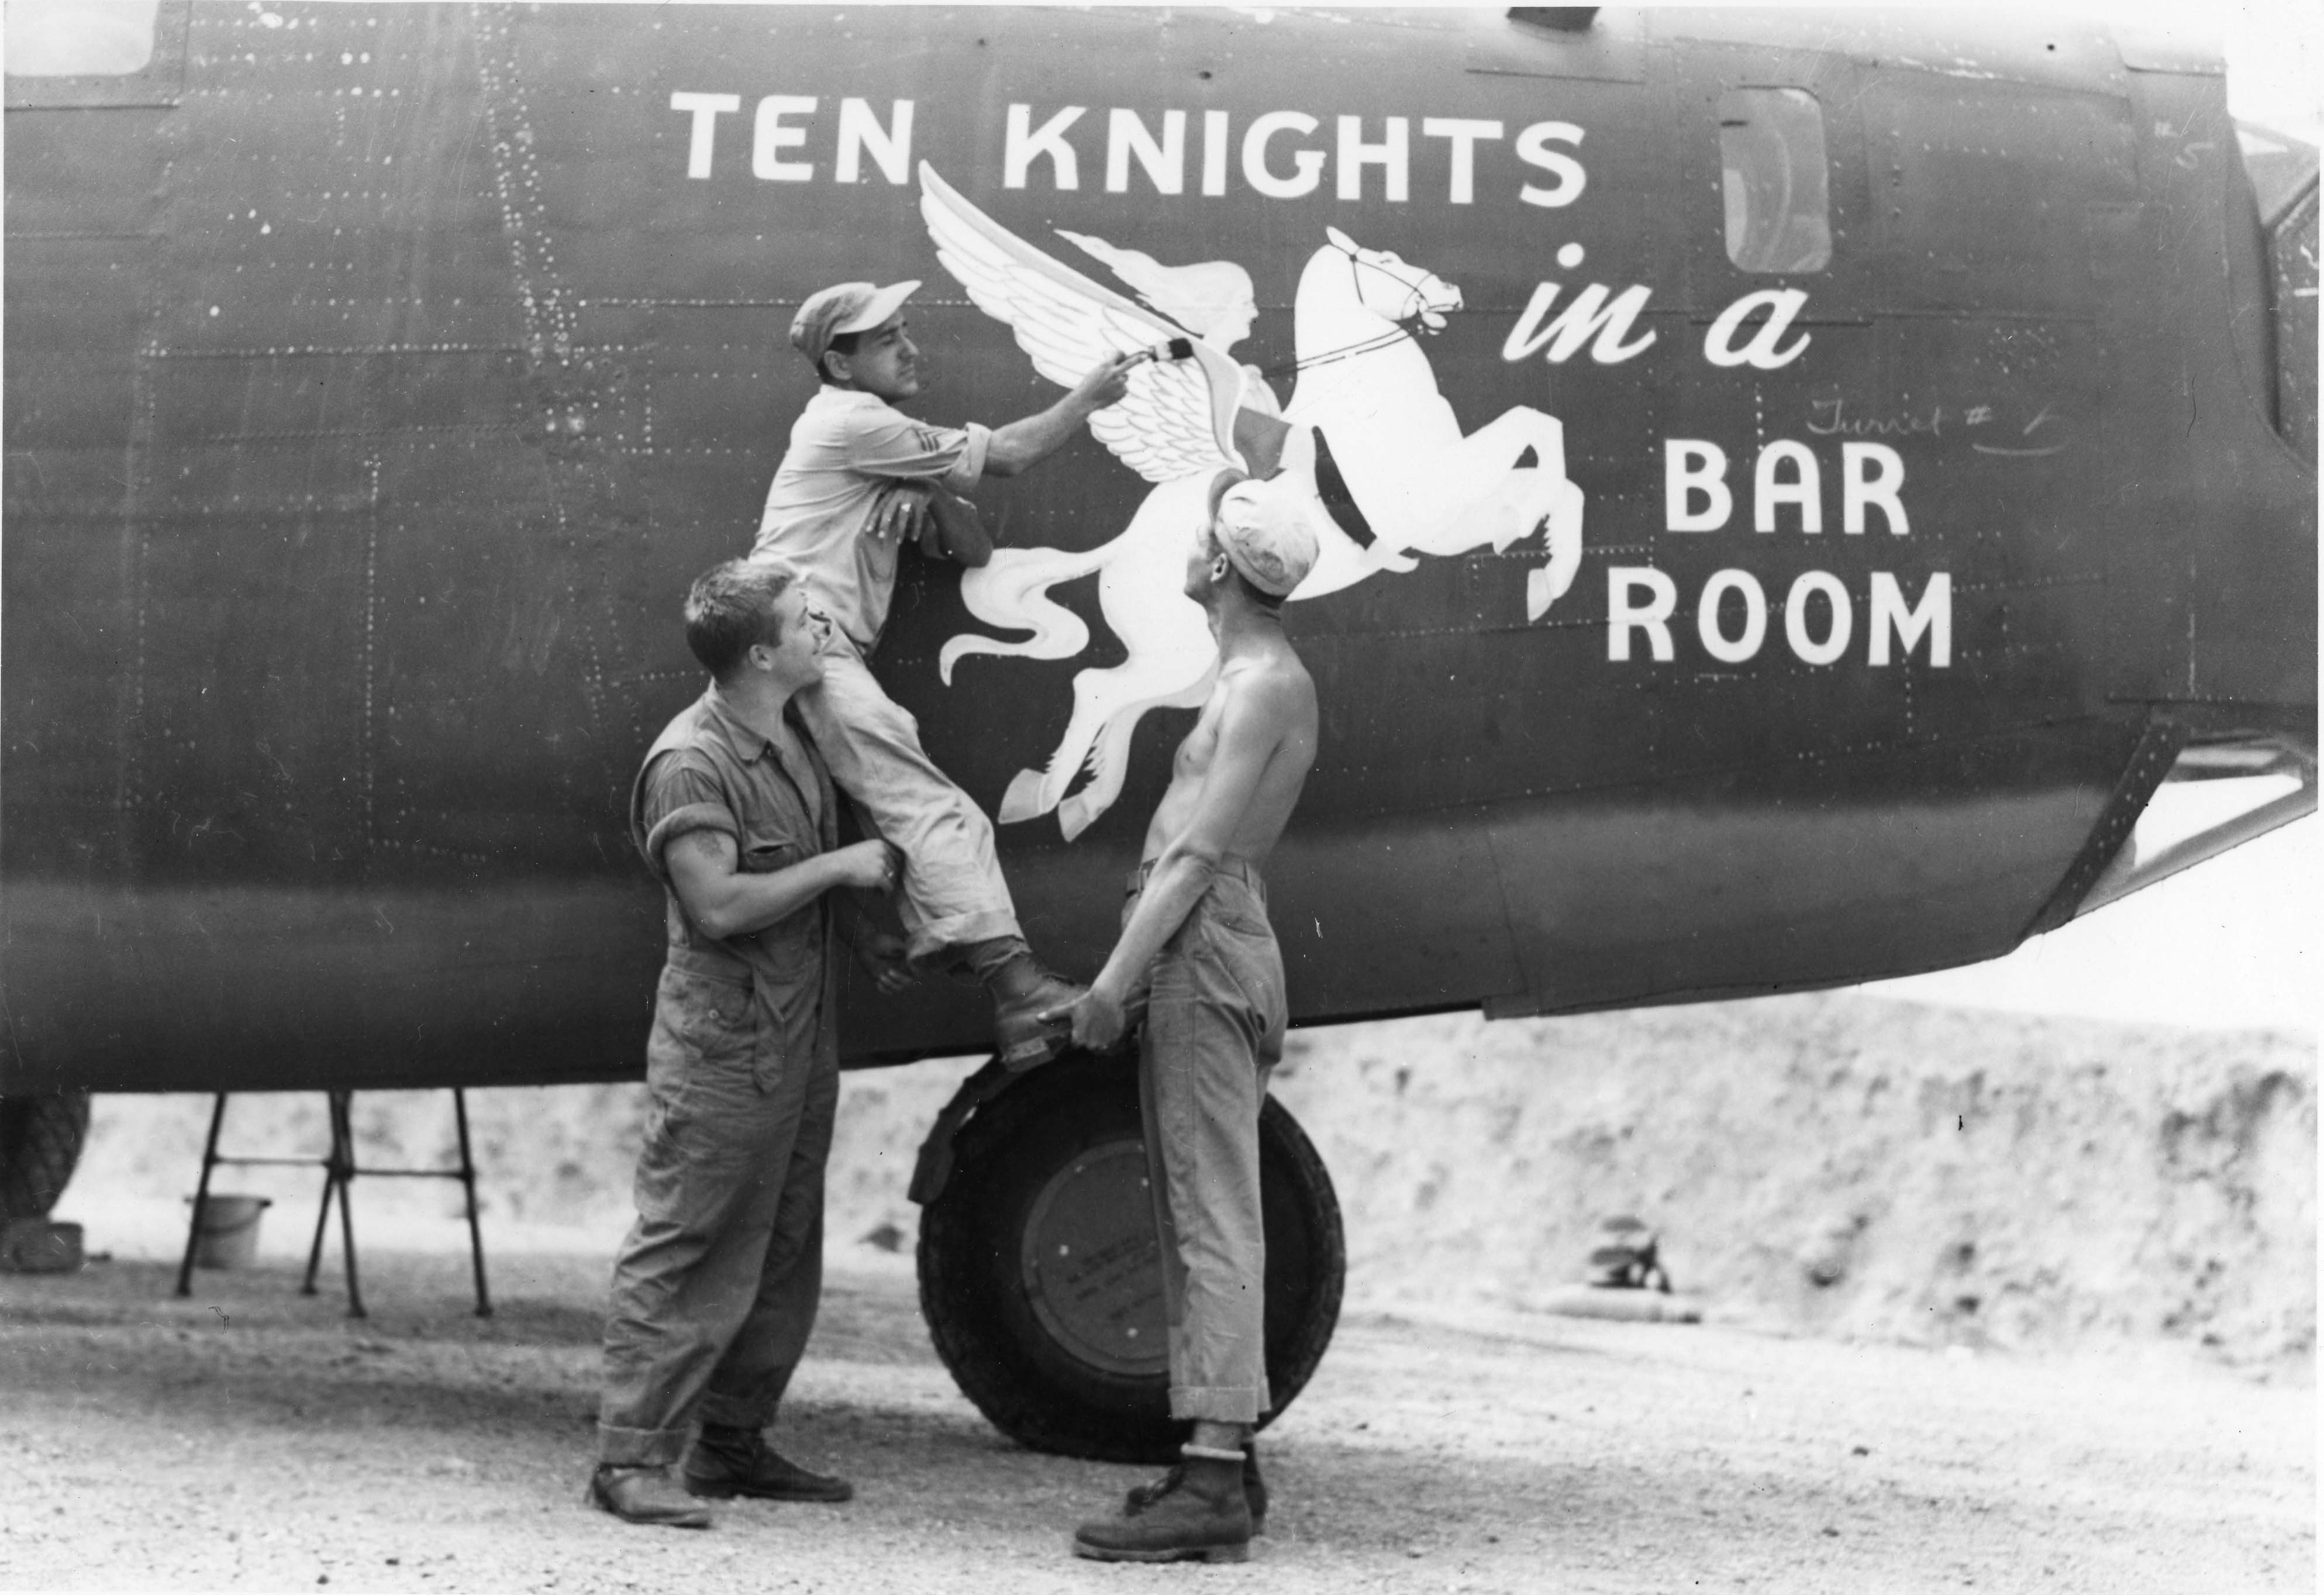 Ten Knights in a Bar Room - B24D - 90th Bomb Group - 321st Squadron - Serial #42-72806 -PH00005472 (Frederick German Collection)